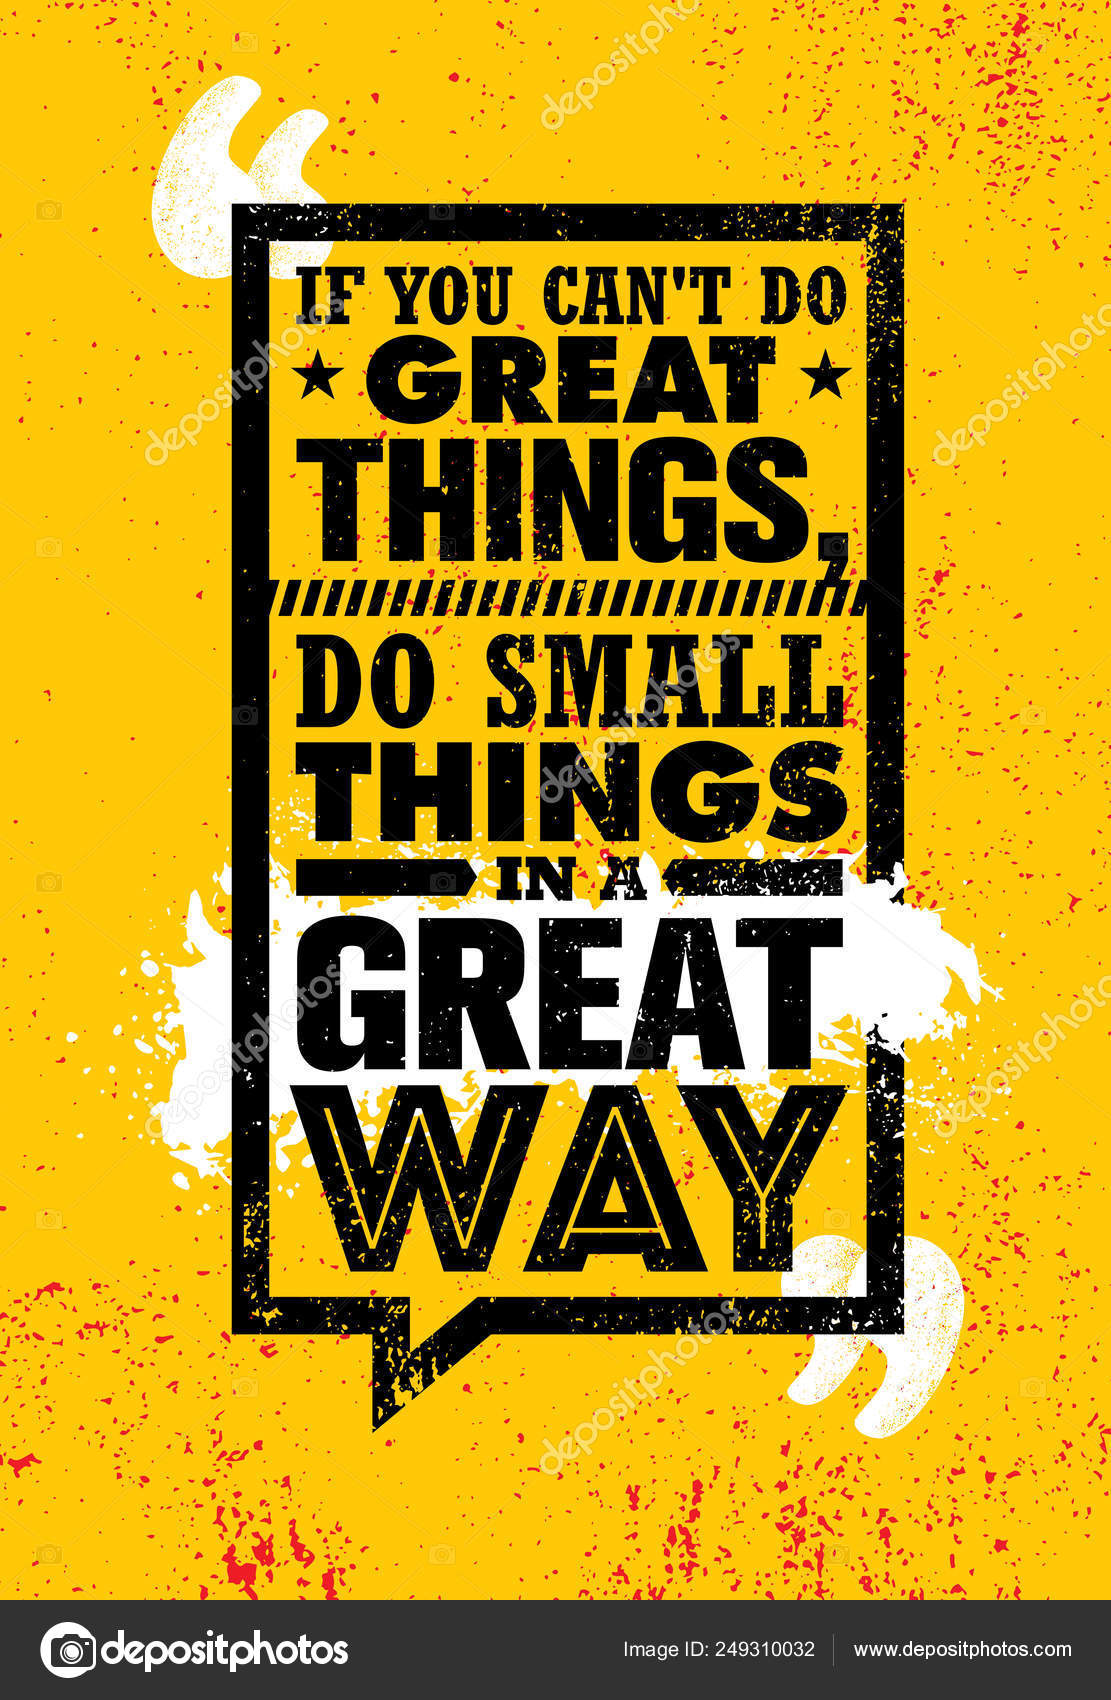 Lettering You Cant Great Things Small Things Great Way Orange